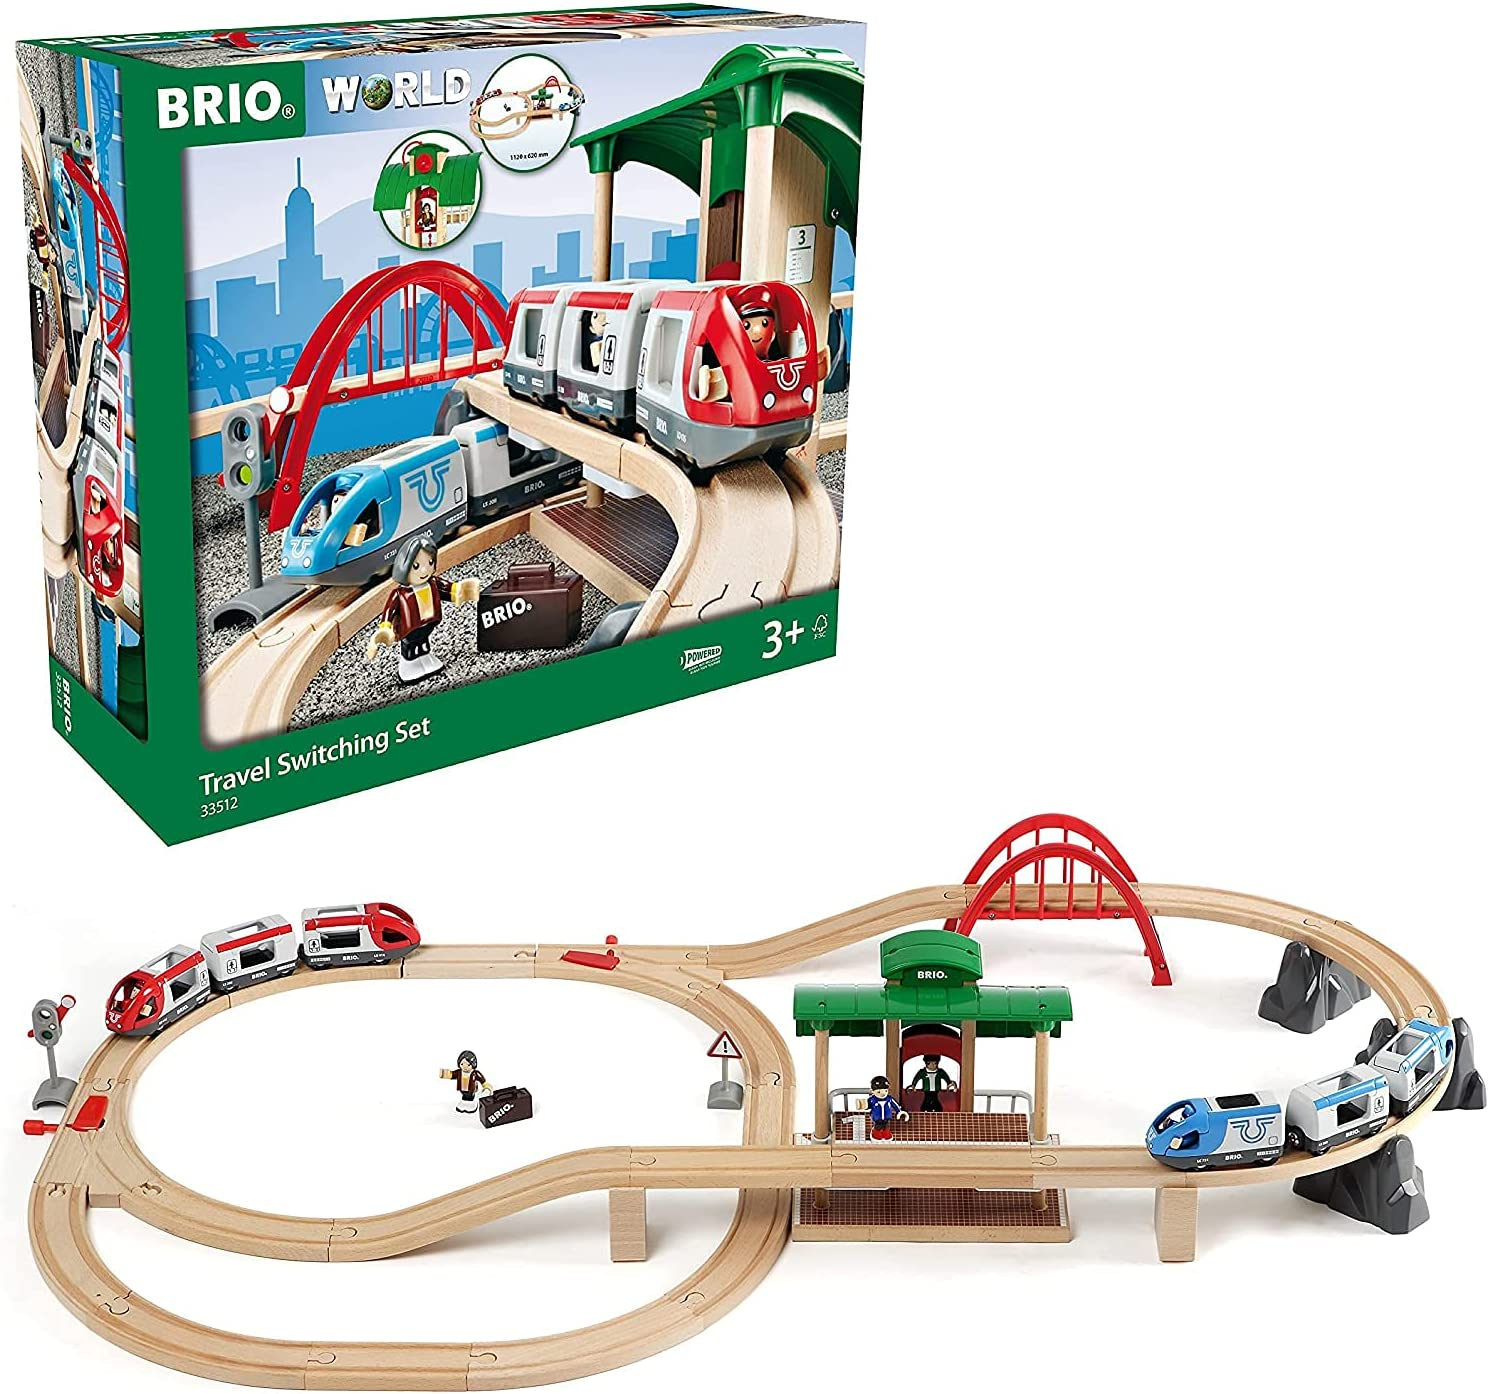 BRIO World - 33512 Travel Switching wit Piece Set New products, world's highest quality popular! Year-end gift Train 42 Toy